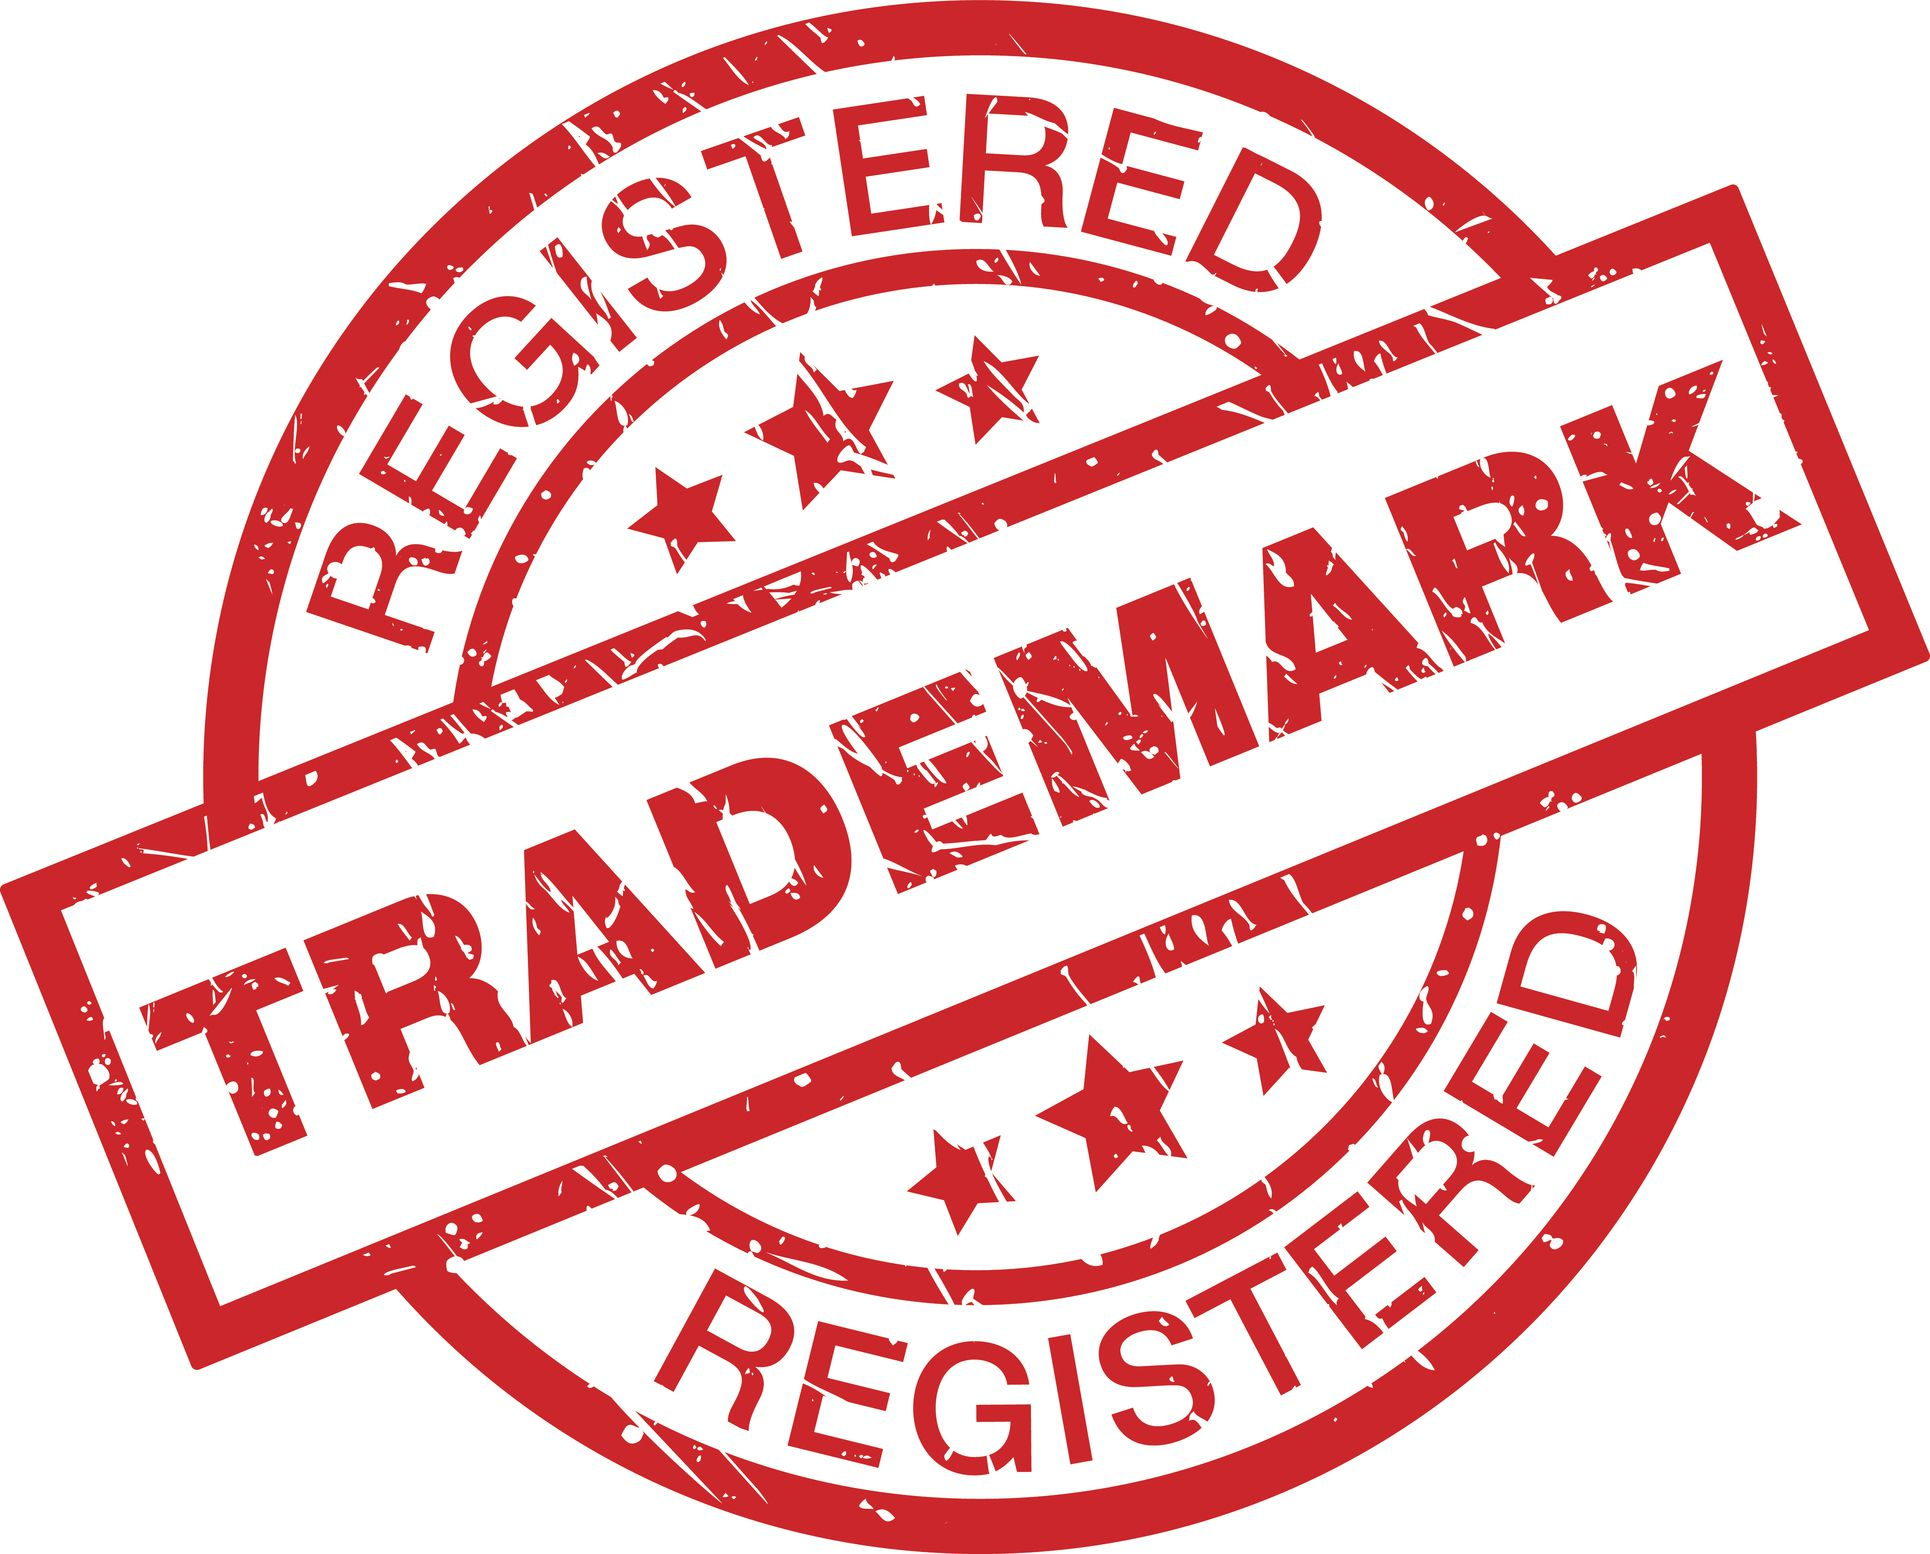 How to Create a Trademark That's Truly Distinctive